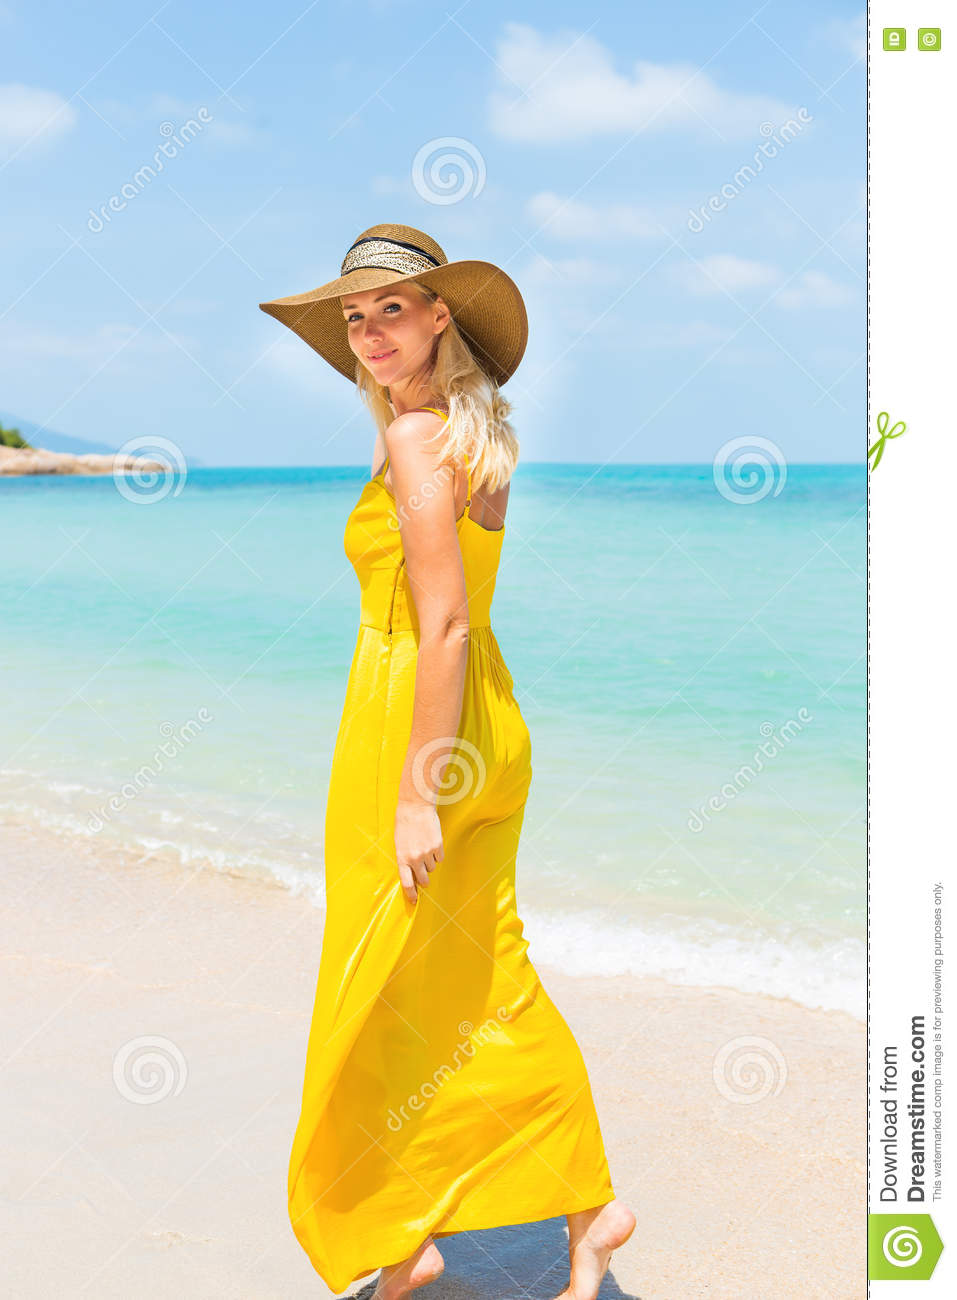 Carefree beautiful fashion blonde woman in beach straw hat and long yellow  dress flying in the wind walking barefoot by sand of tropical beach. Natural  ... c7d12bdc6a49